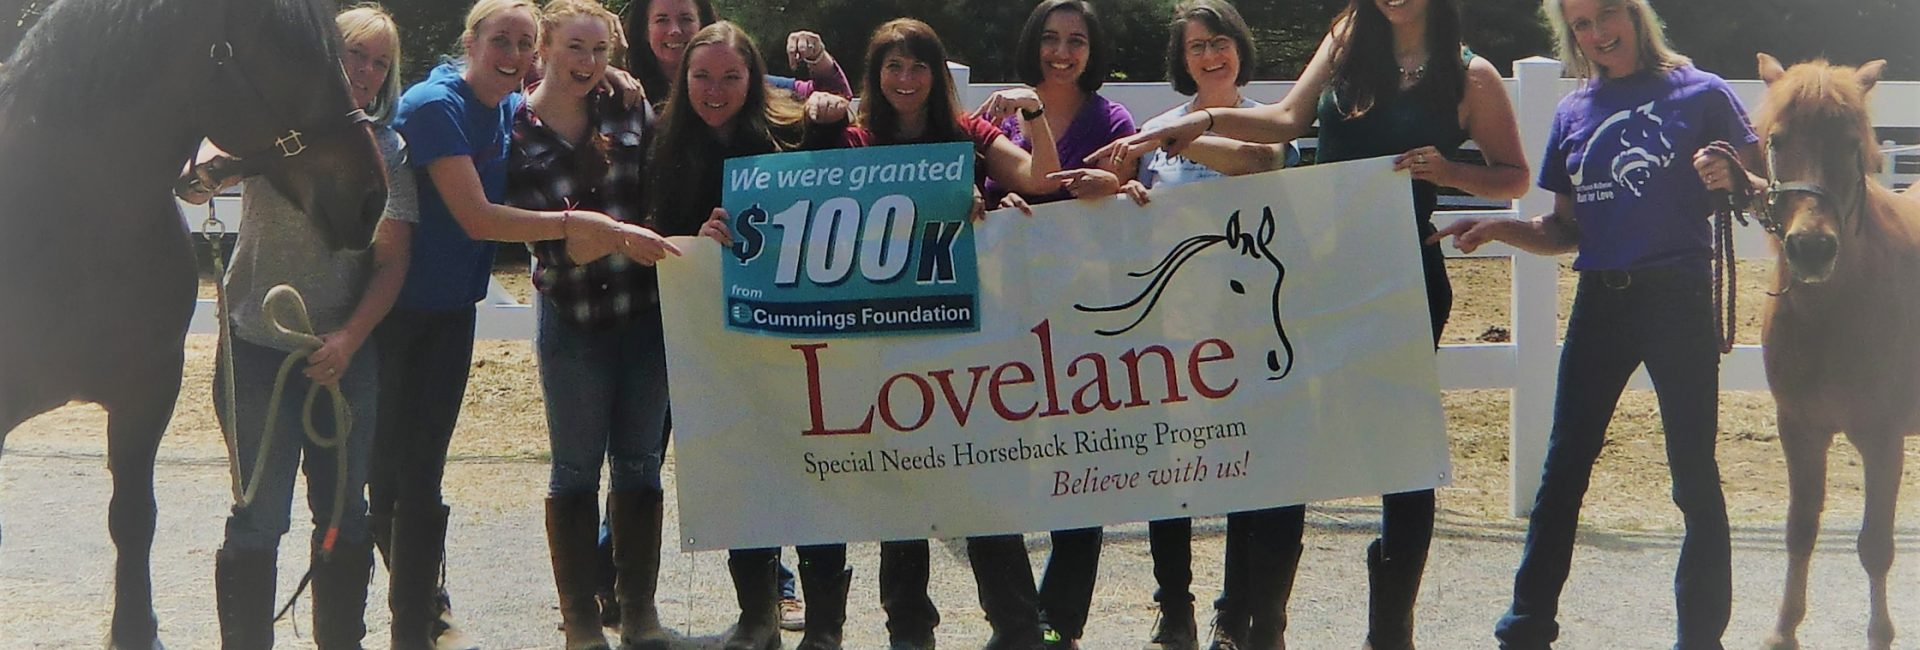 Thank you to Cummings Foundation $100K for 100!